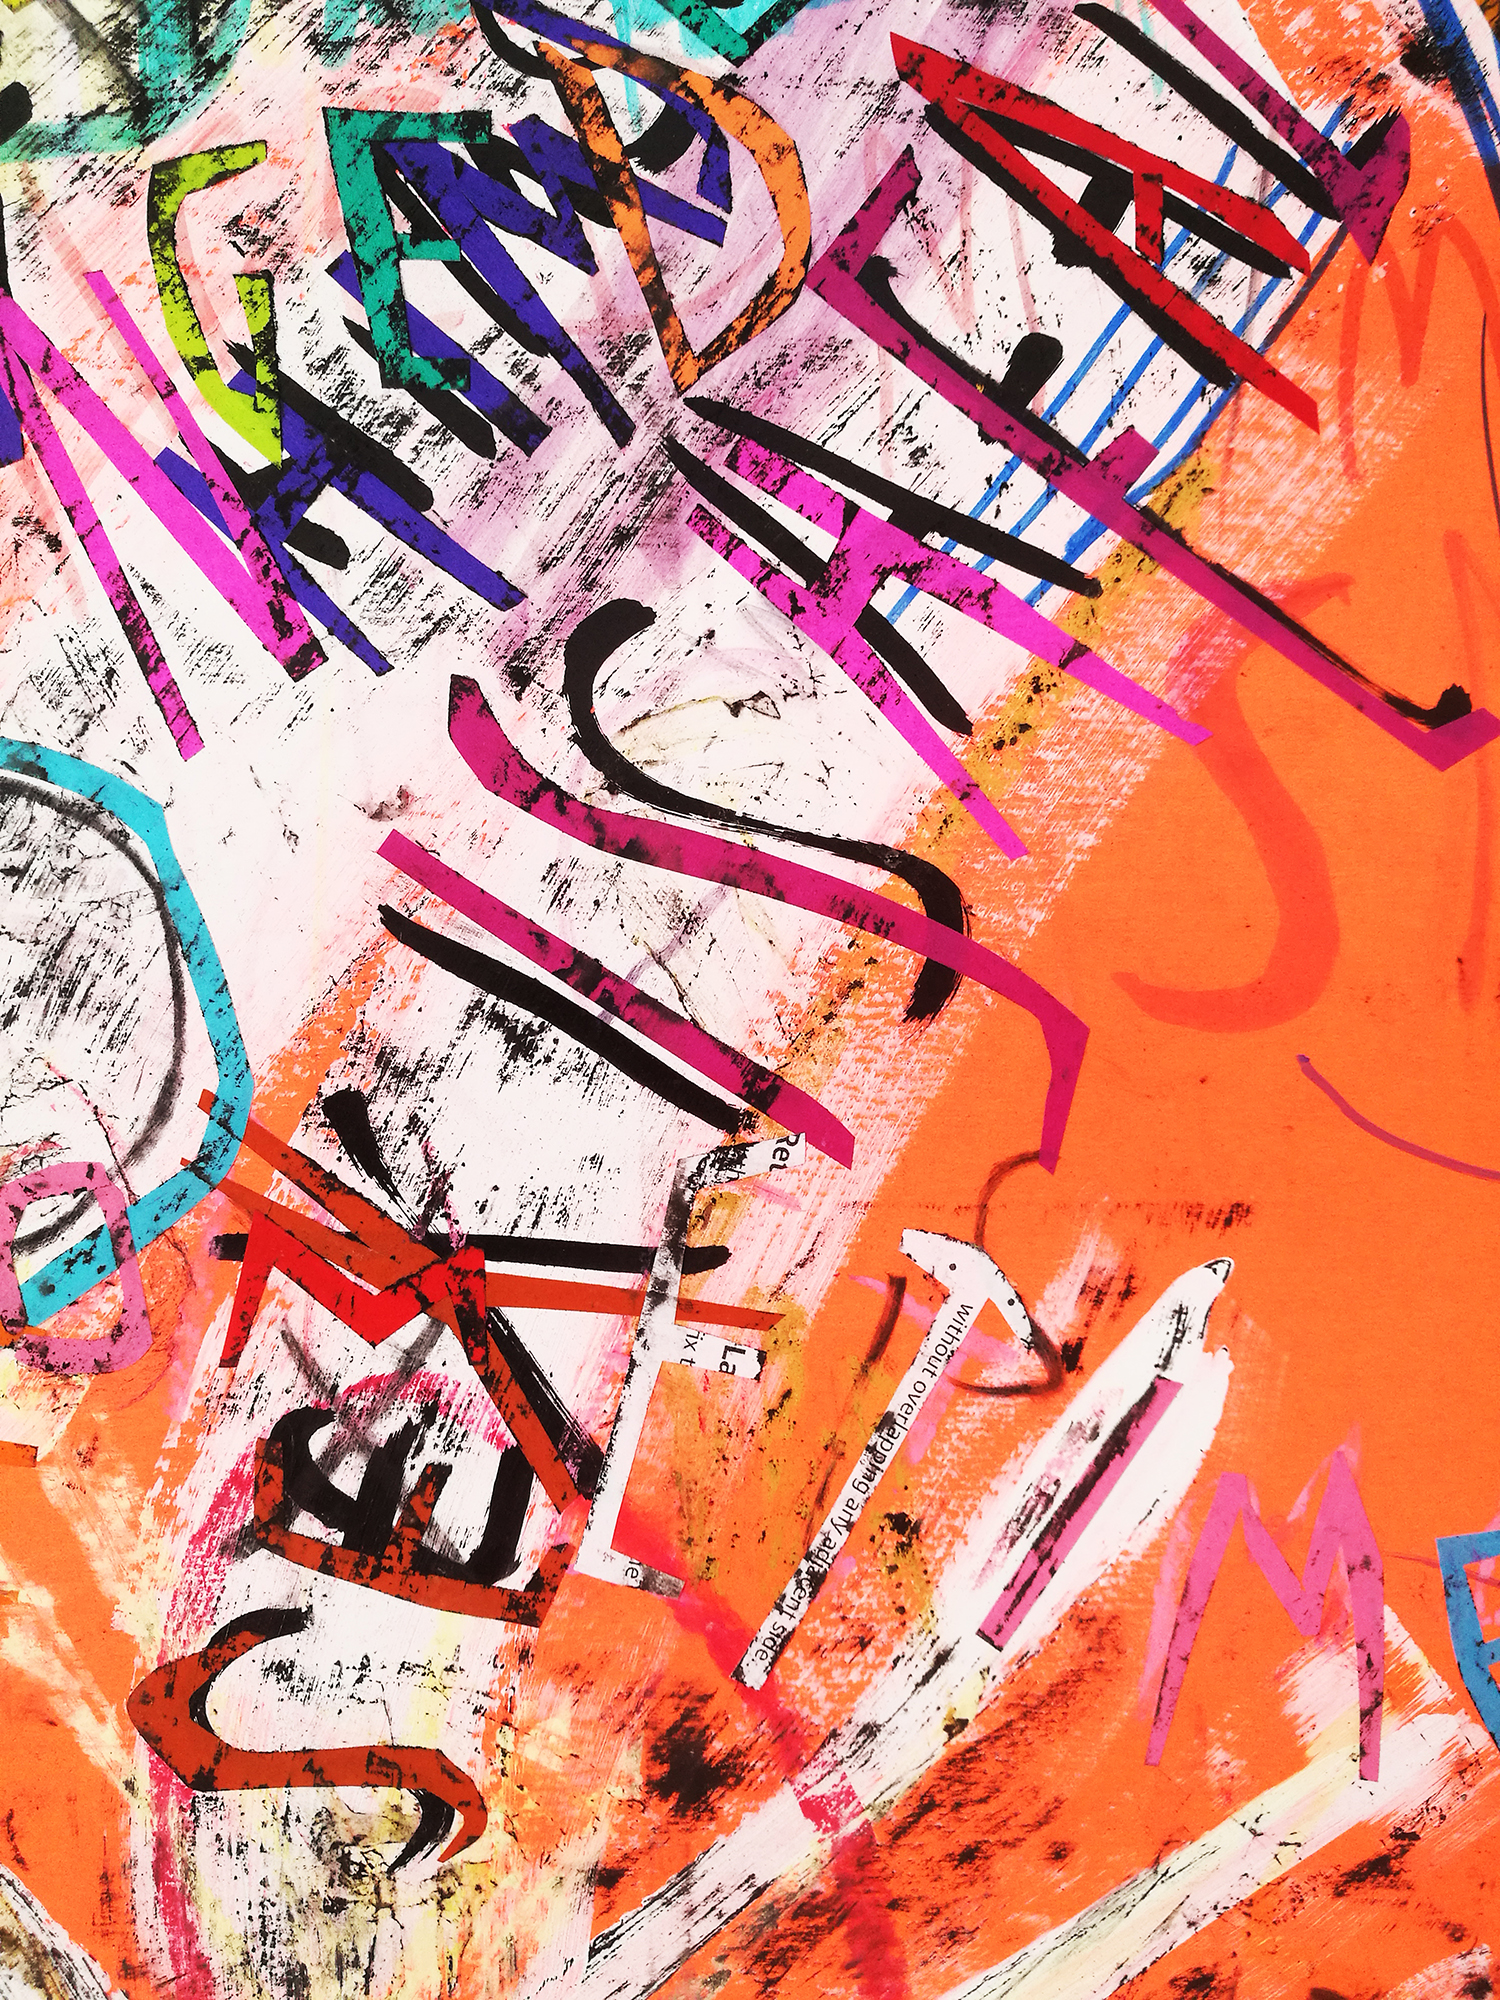 Despina Stokou_Wallflower (peach)_Markers, pastel, and paper collage on primed neon colored paper_71 x 56 cm_2018_detailshot.jpg